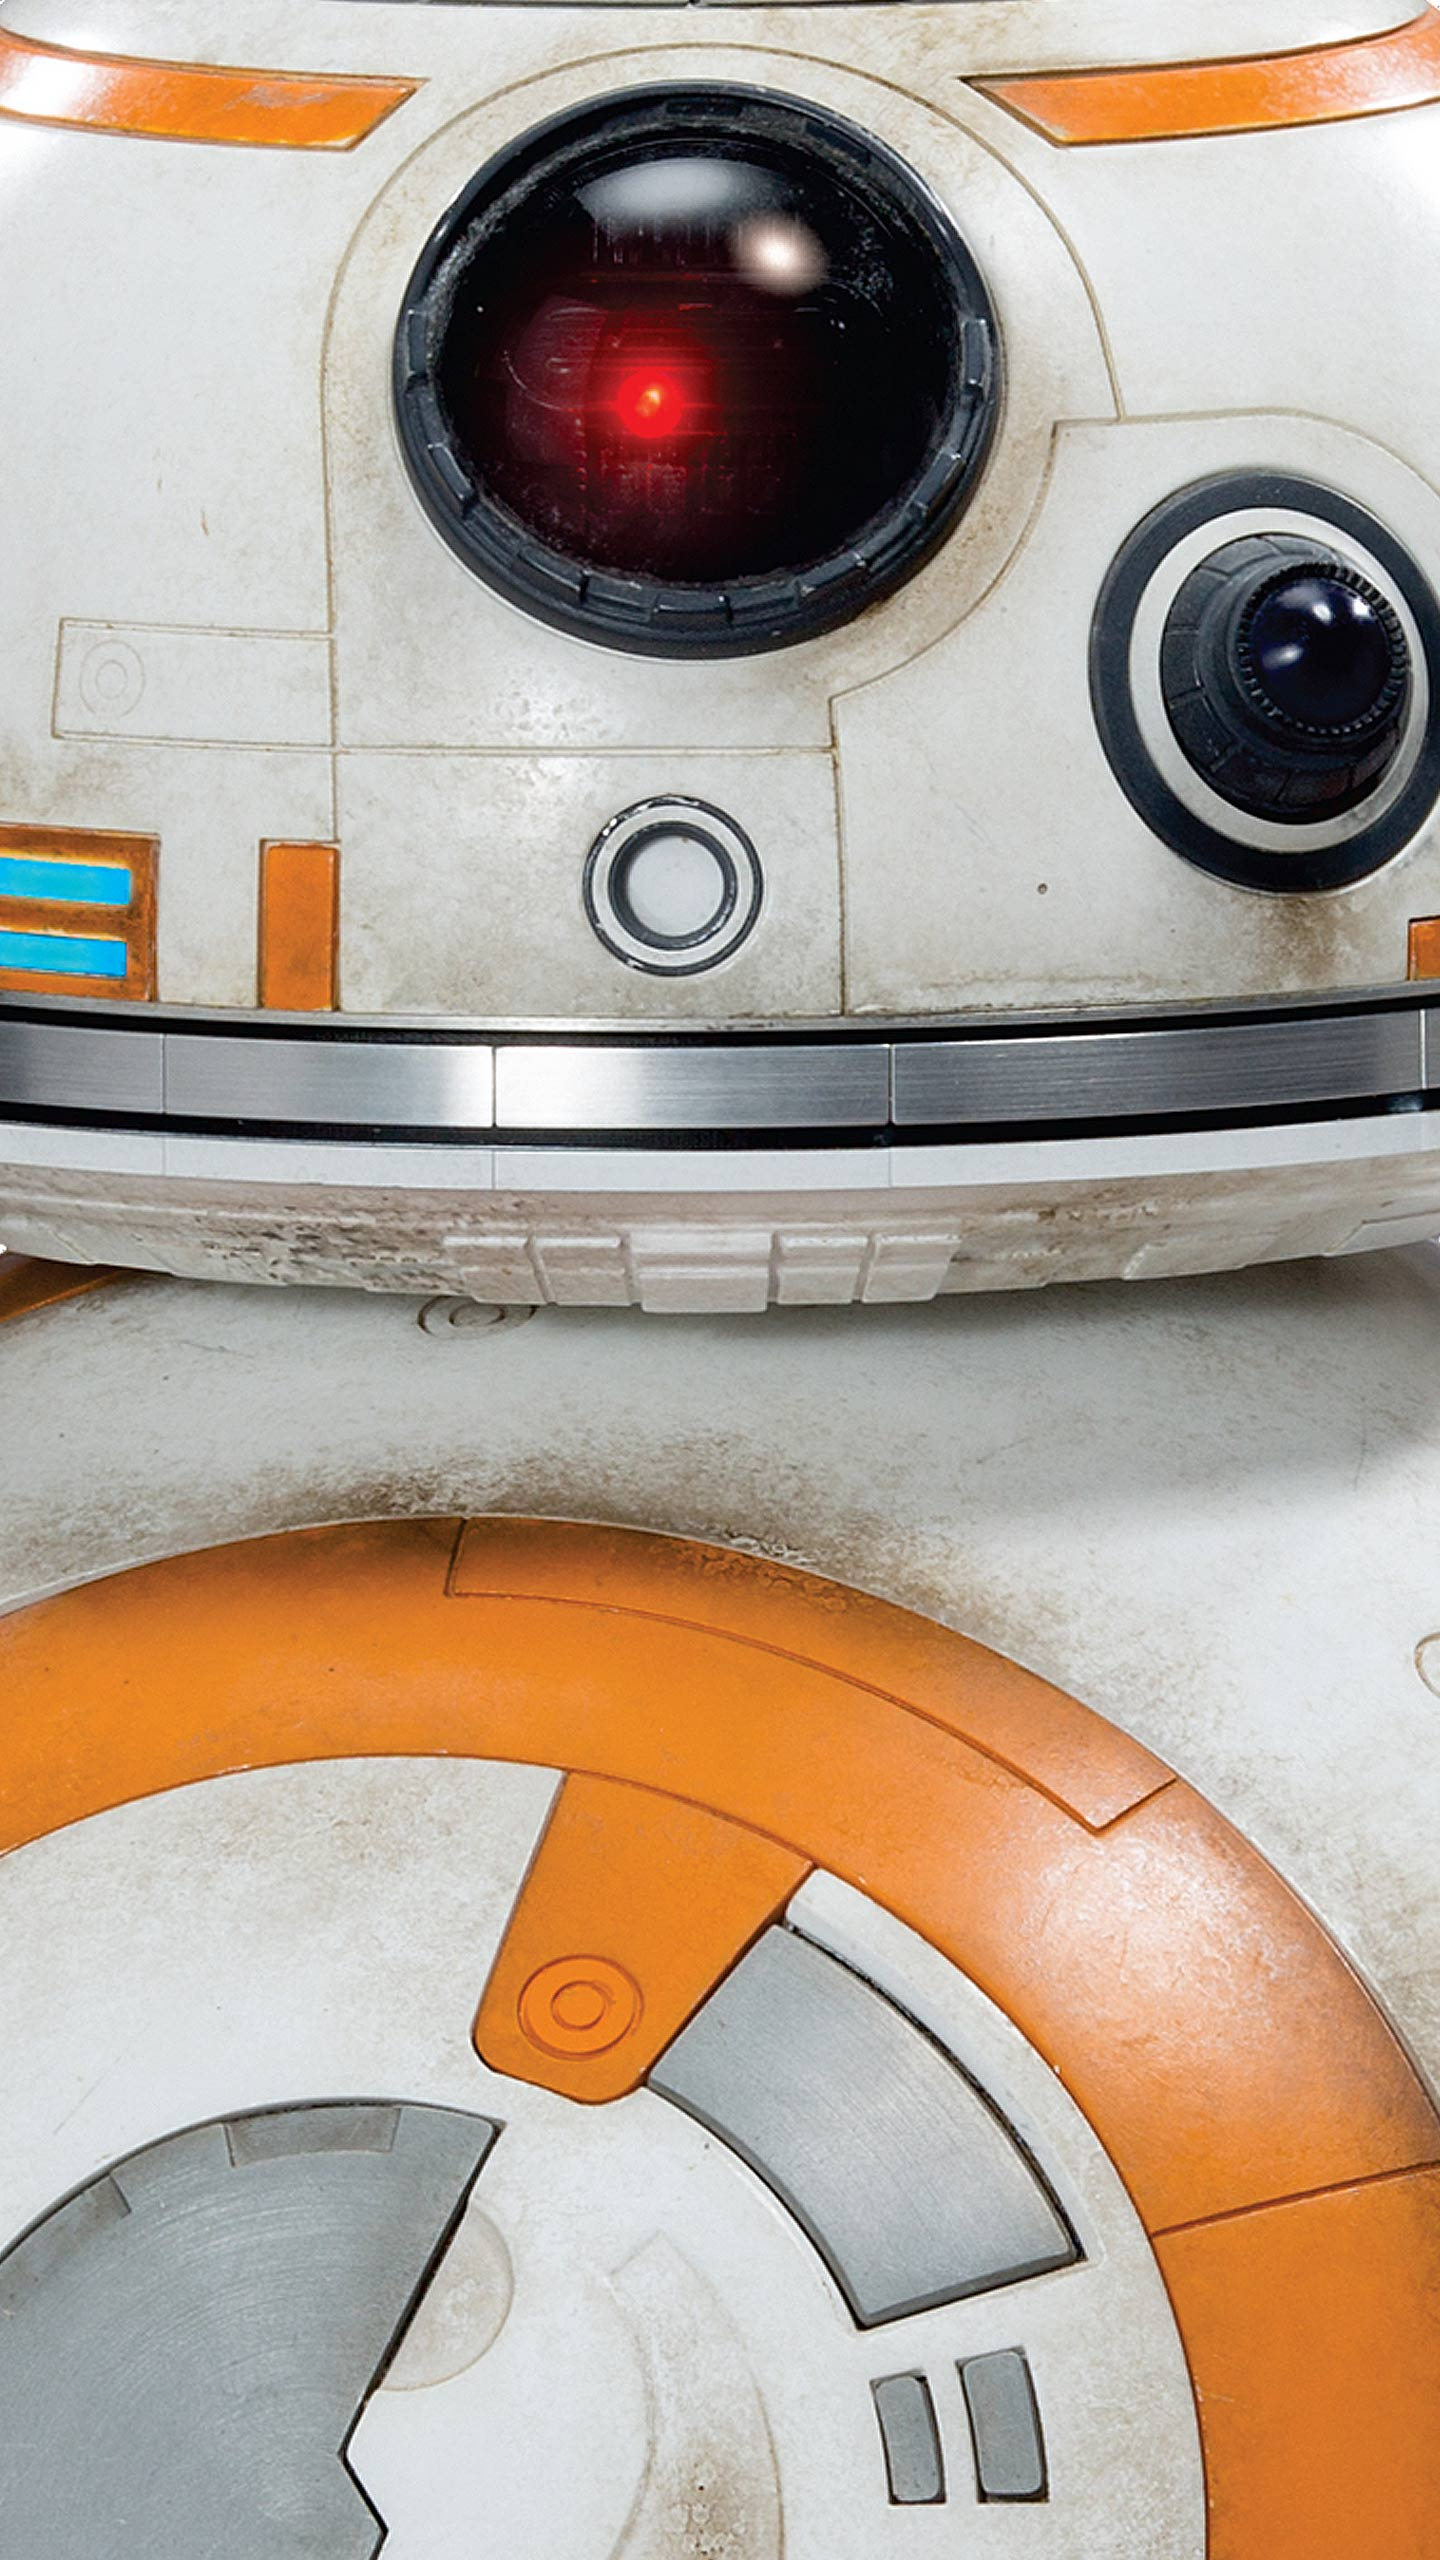 Star Wars The Force Awakens Wallpapers For Your Iphone 6s And Galaxy S6 Slashgear